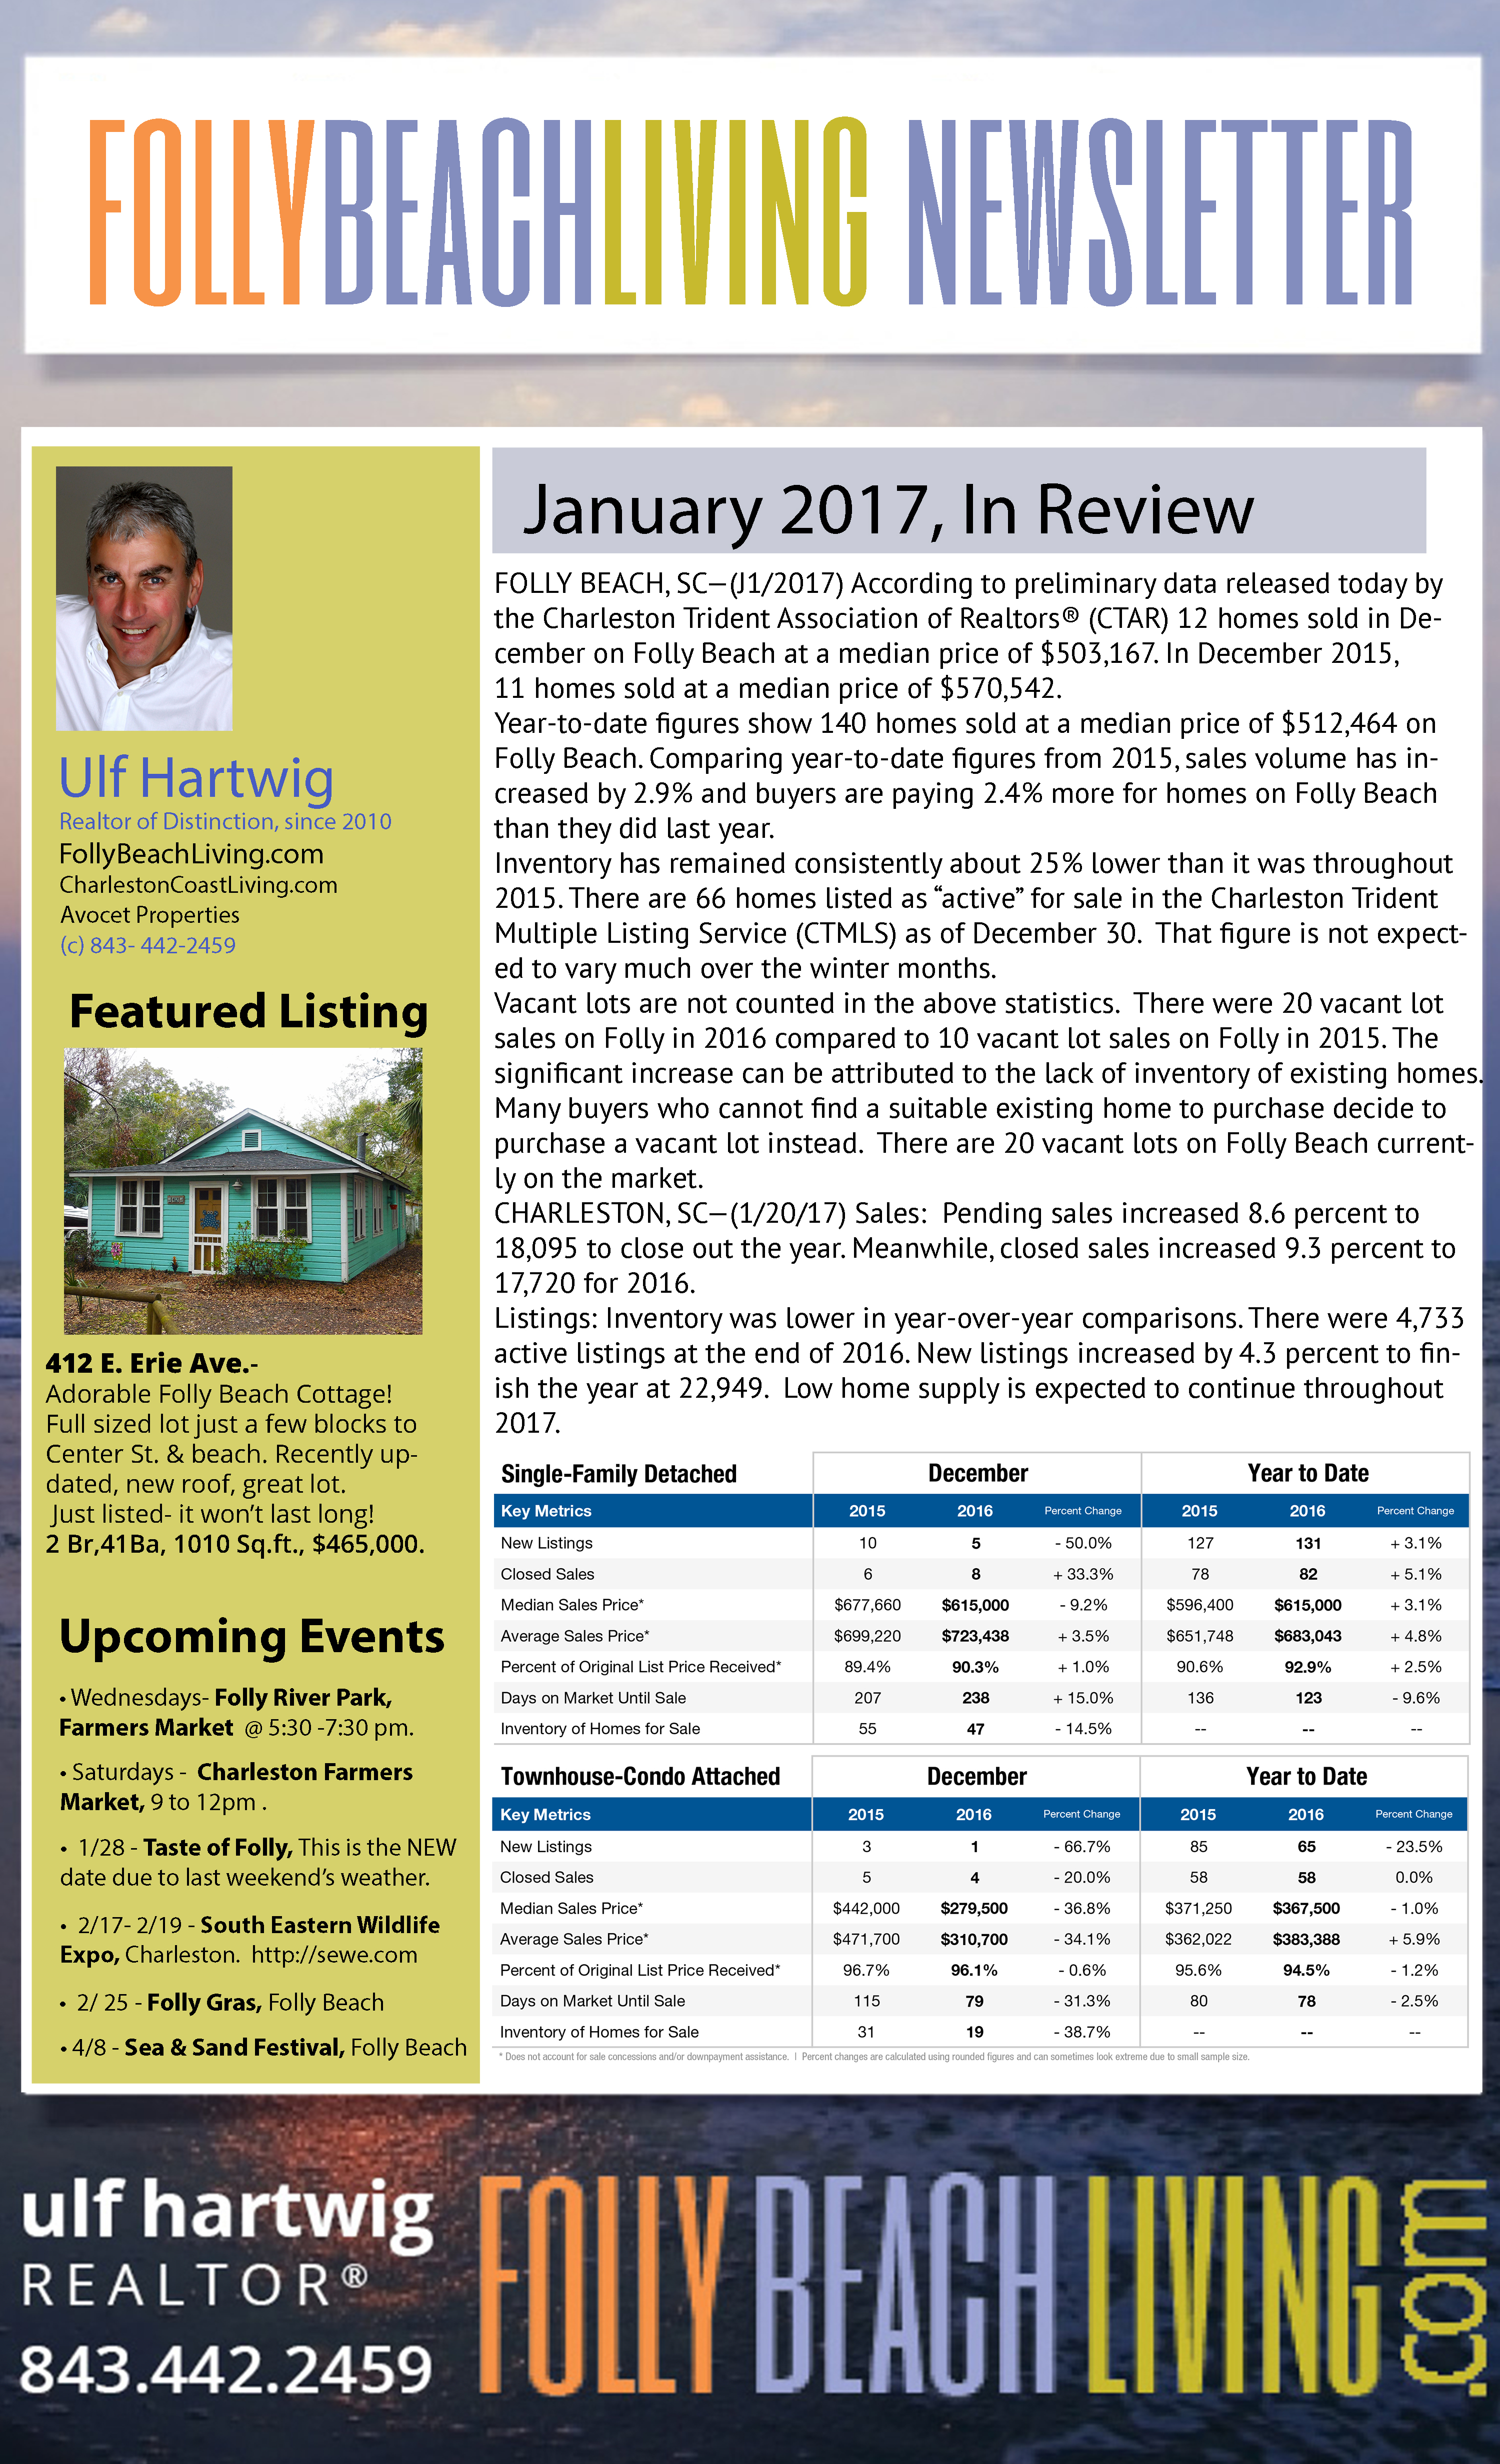 Folly Beach Living January 2017 Newsletter